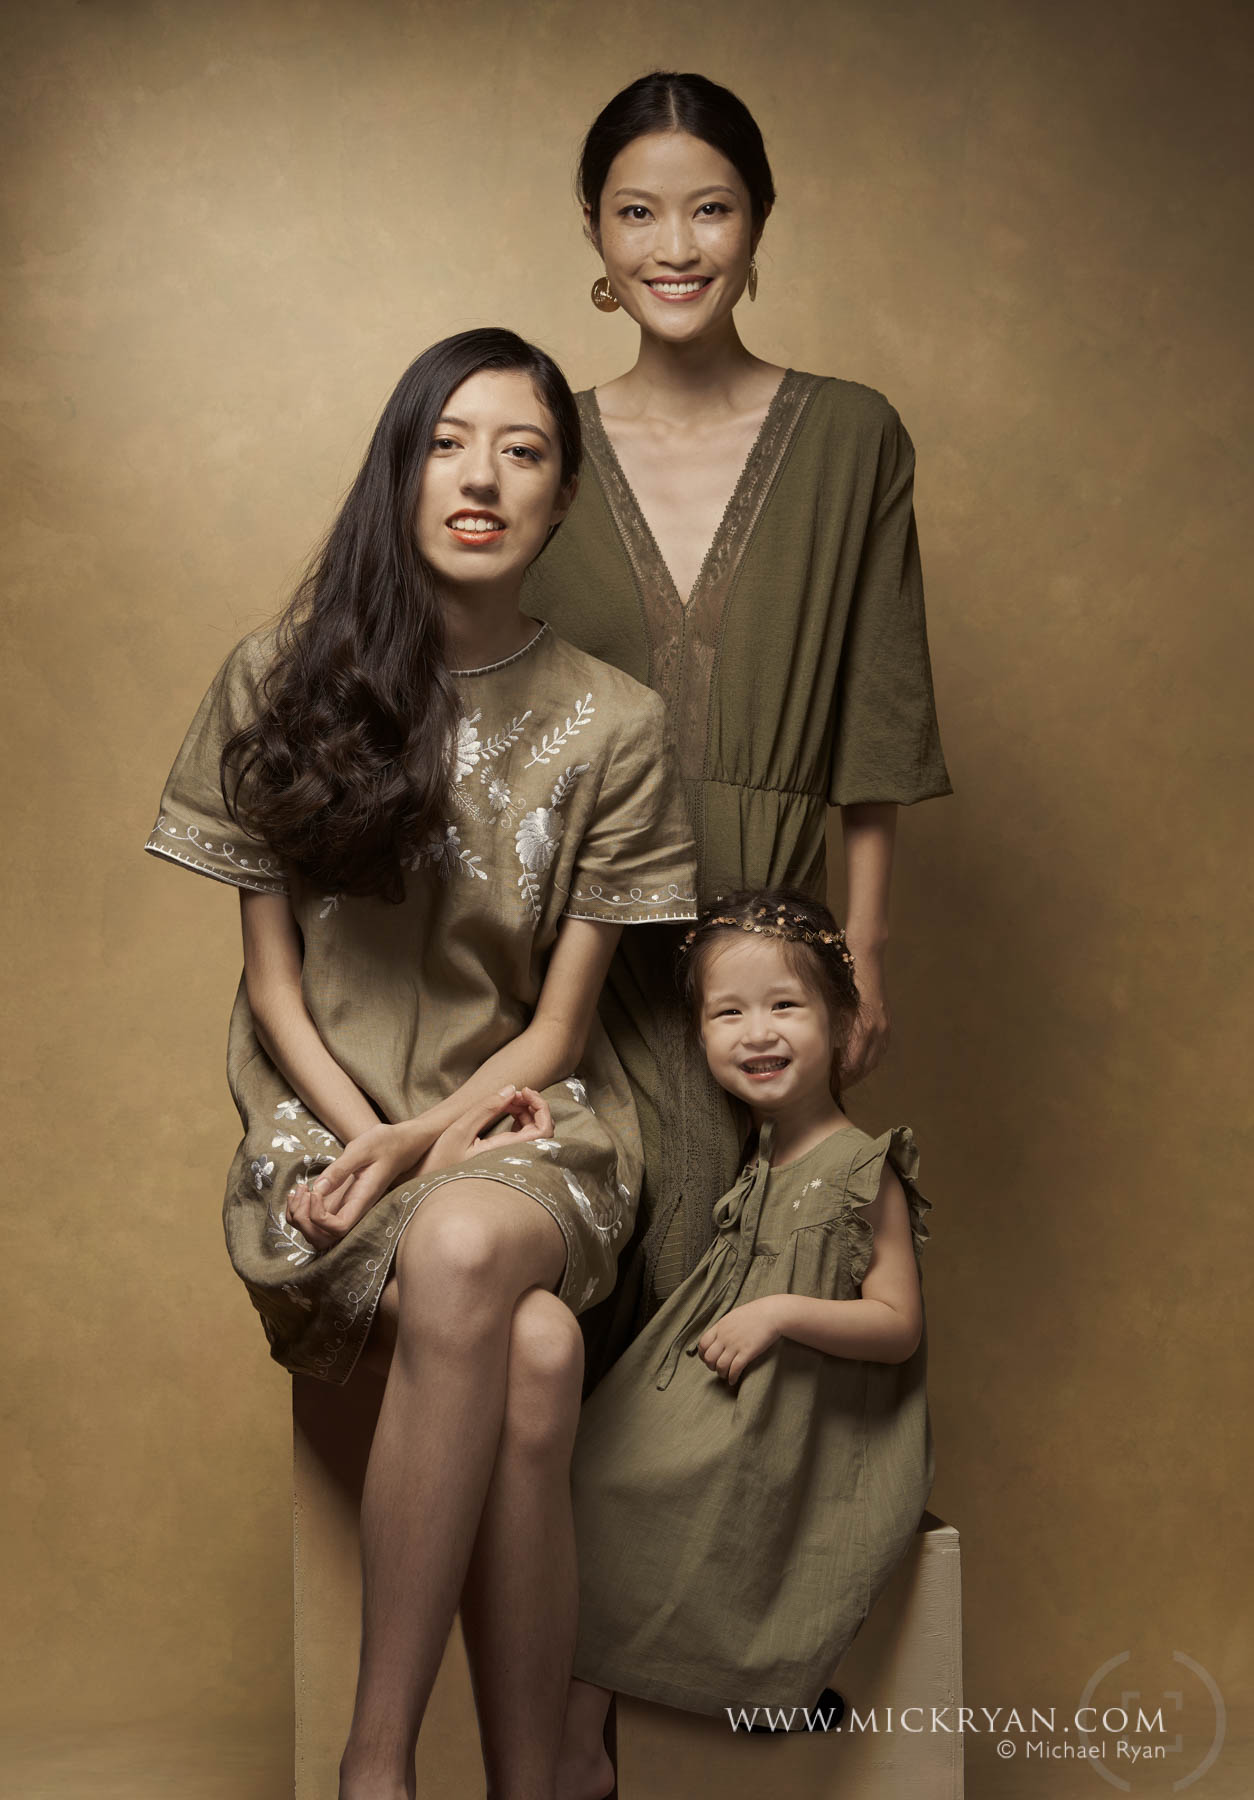 Rembrandt Mucha Family Shoot5385.jpg